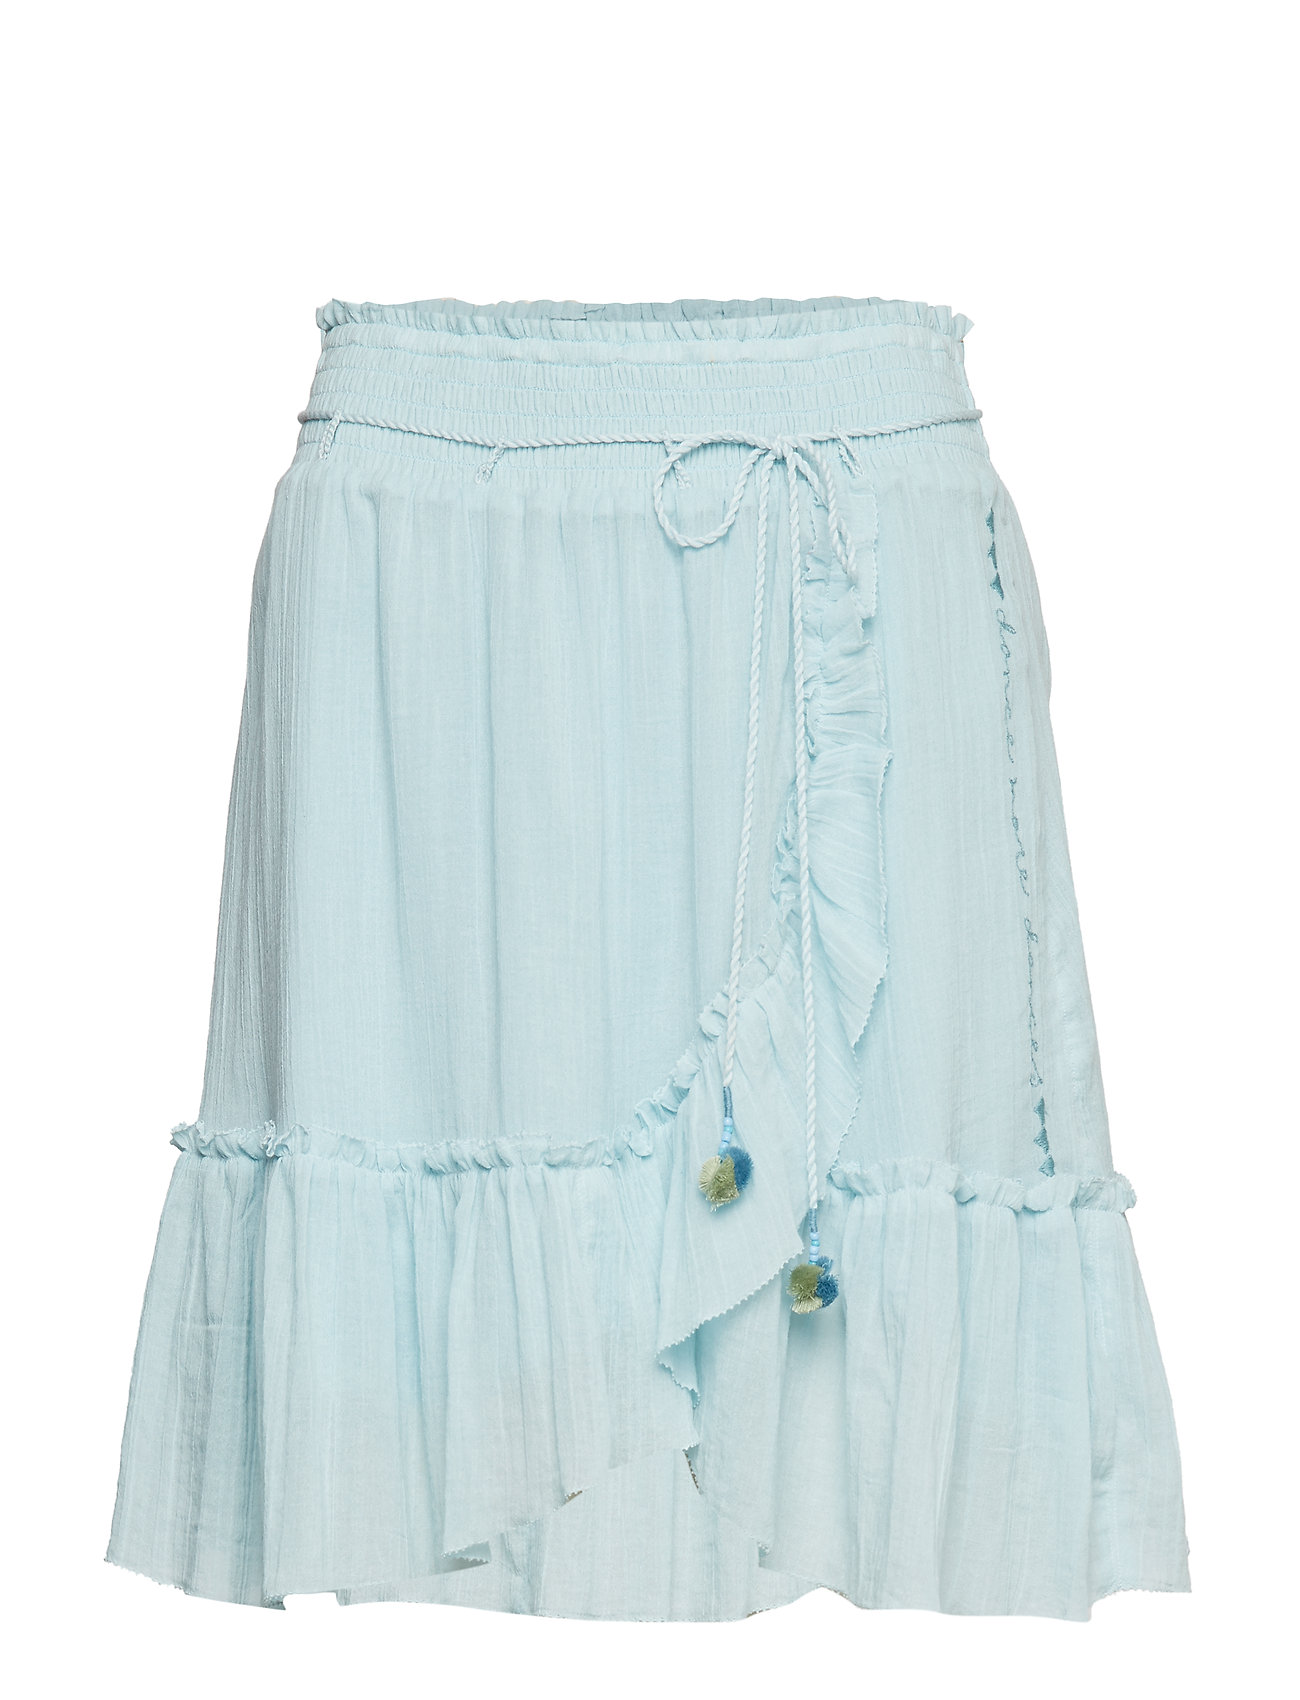 ODD MOLLY superflow skirt - HORIZON BLUE